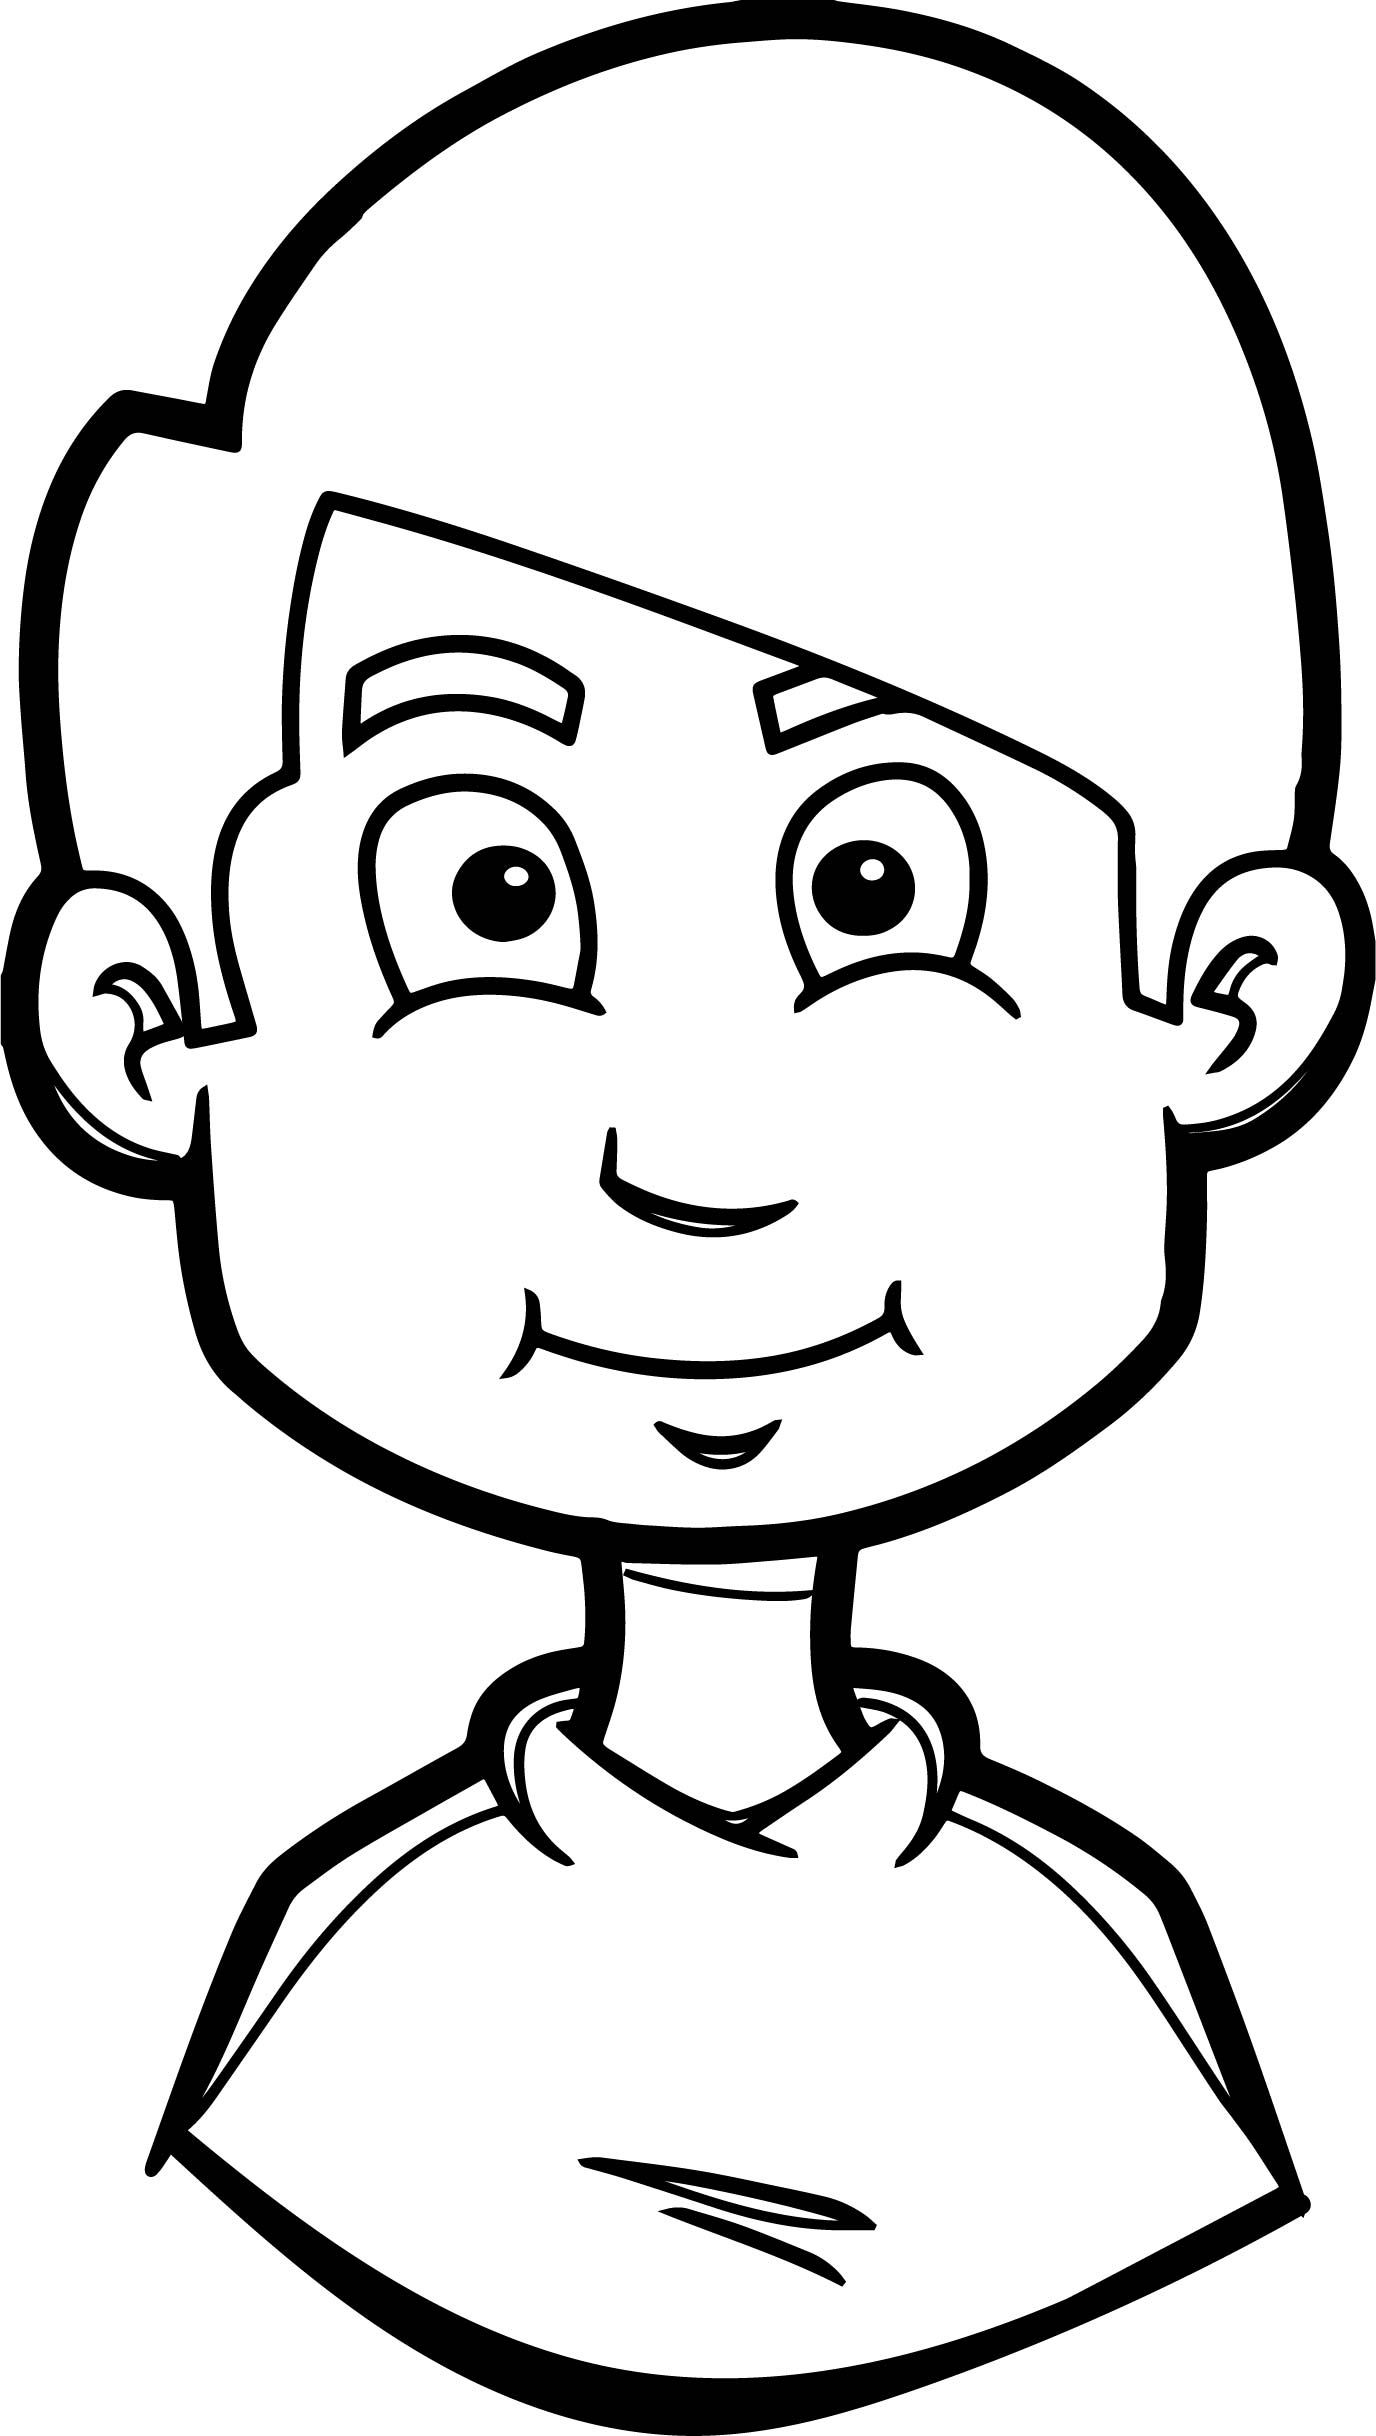 99 Coloring Page Smiling Face